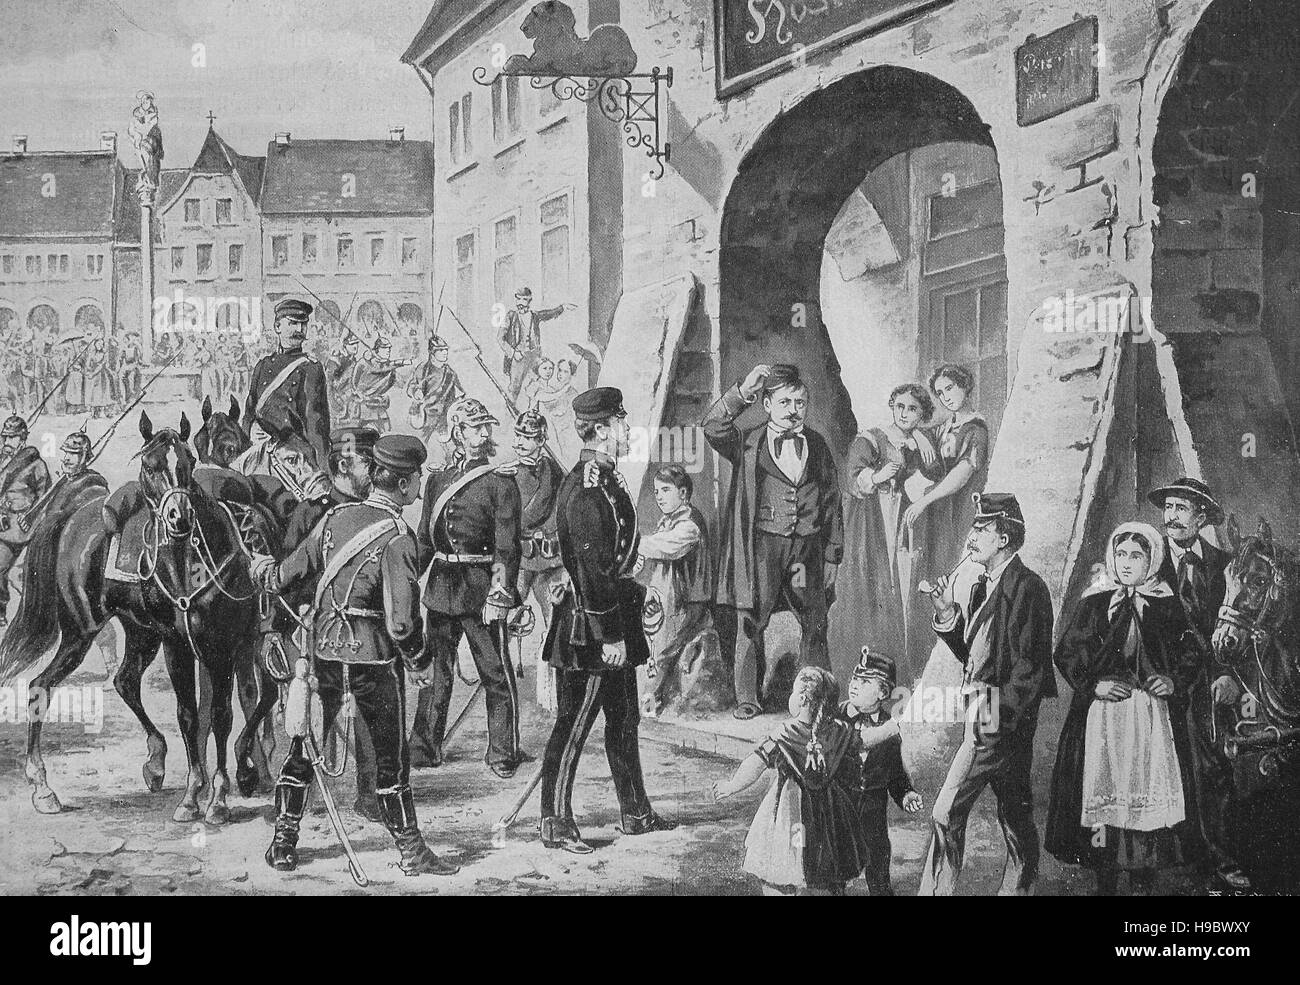 billeting of soldiers in Bohemia 1861, Napoleonic Wars, historical illustration - Stock Image